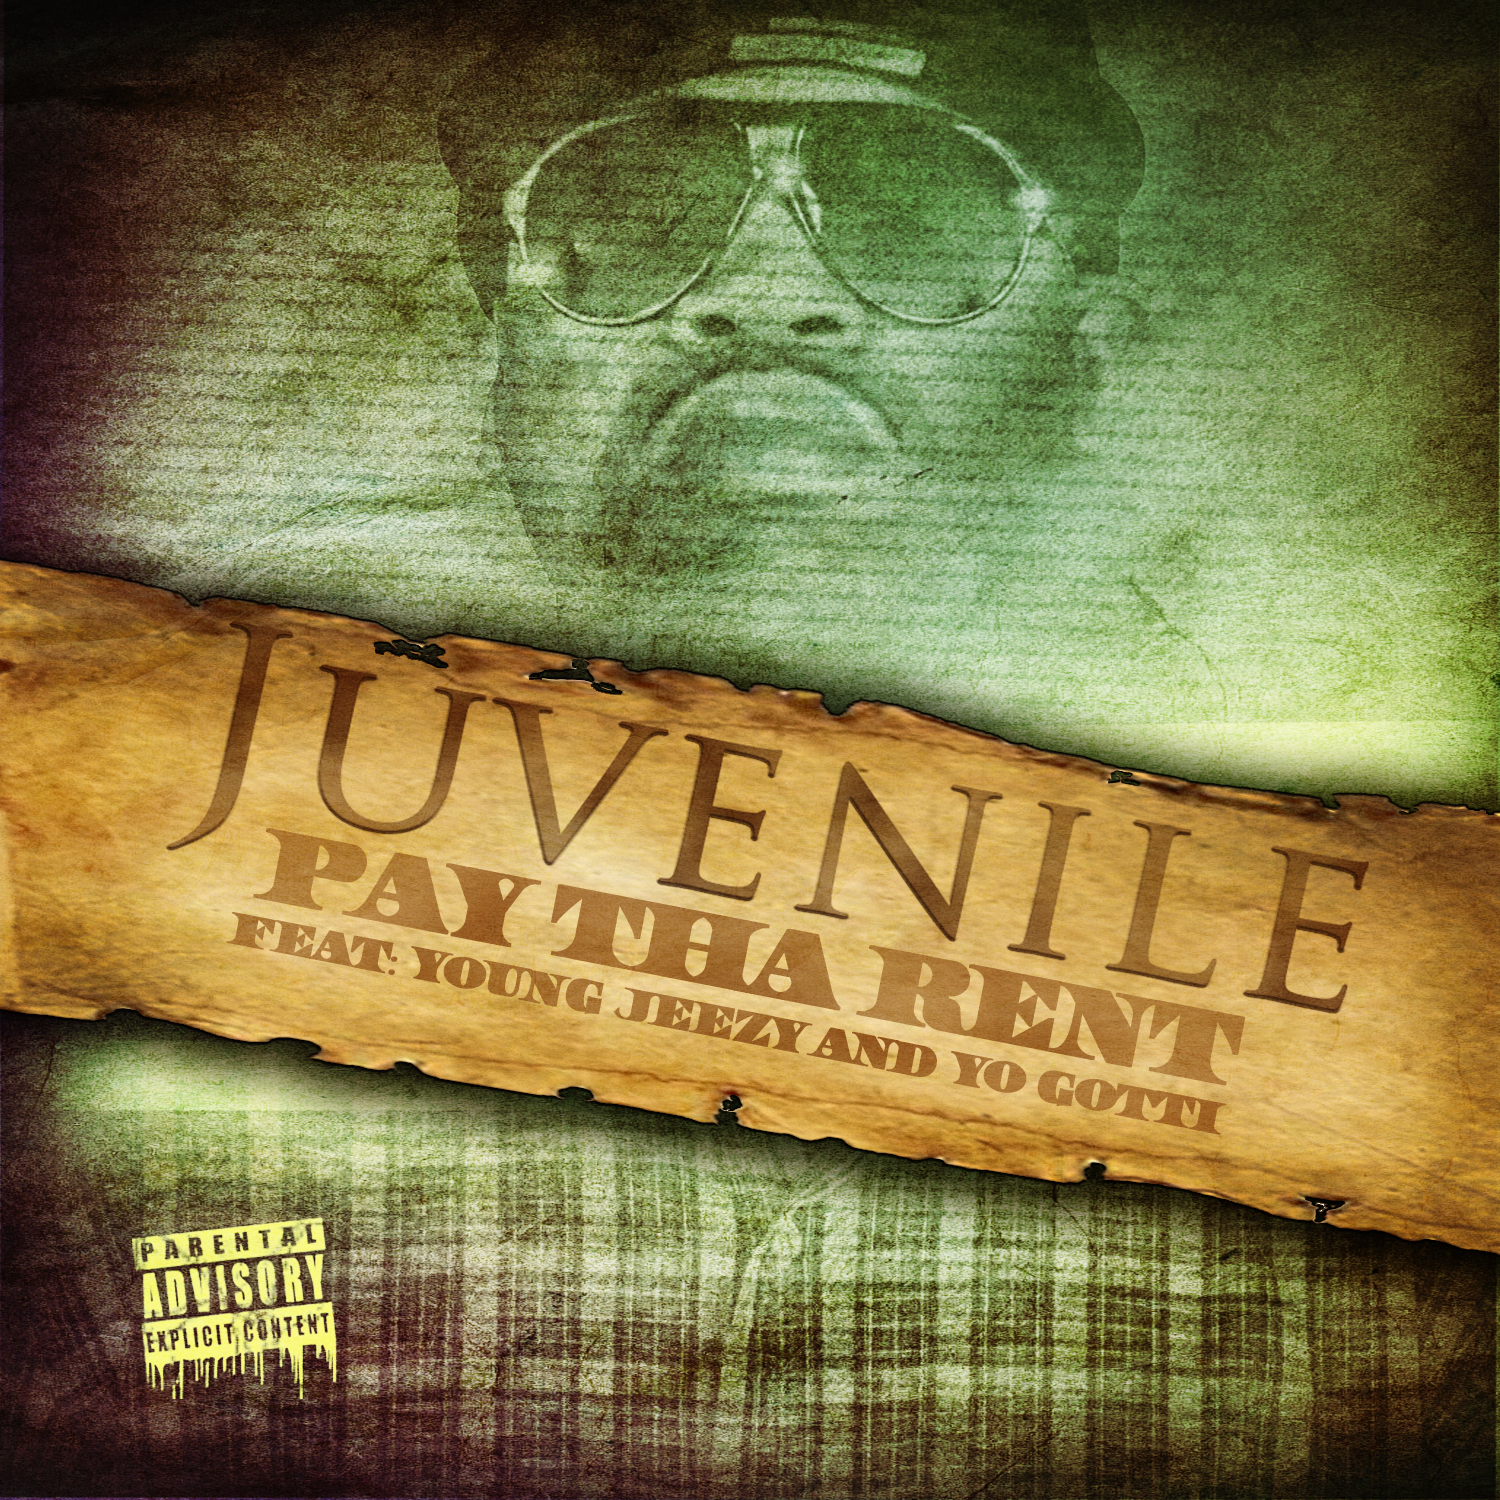 juvenilepaytherentsinglesingle12